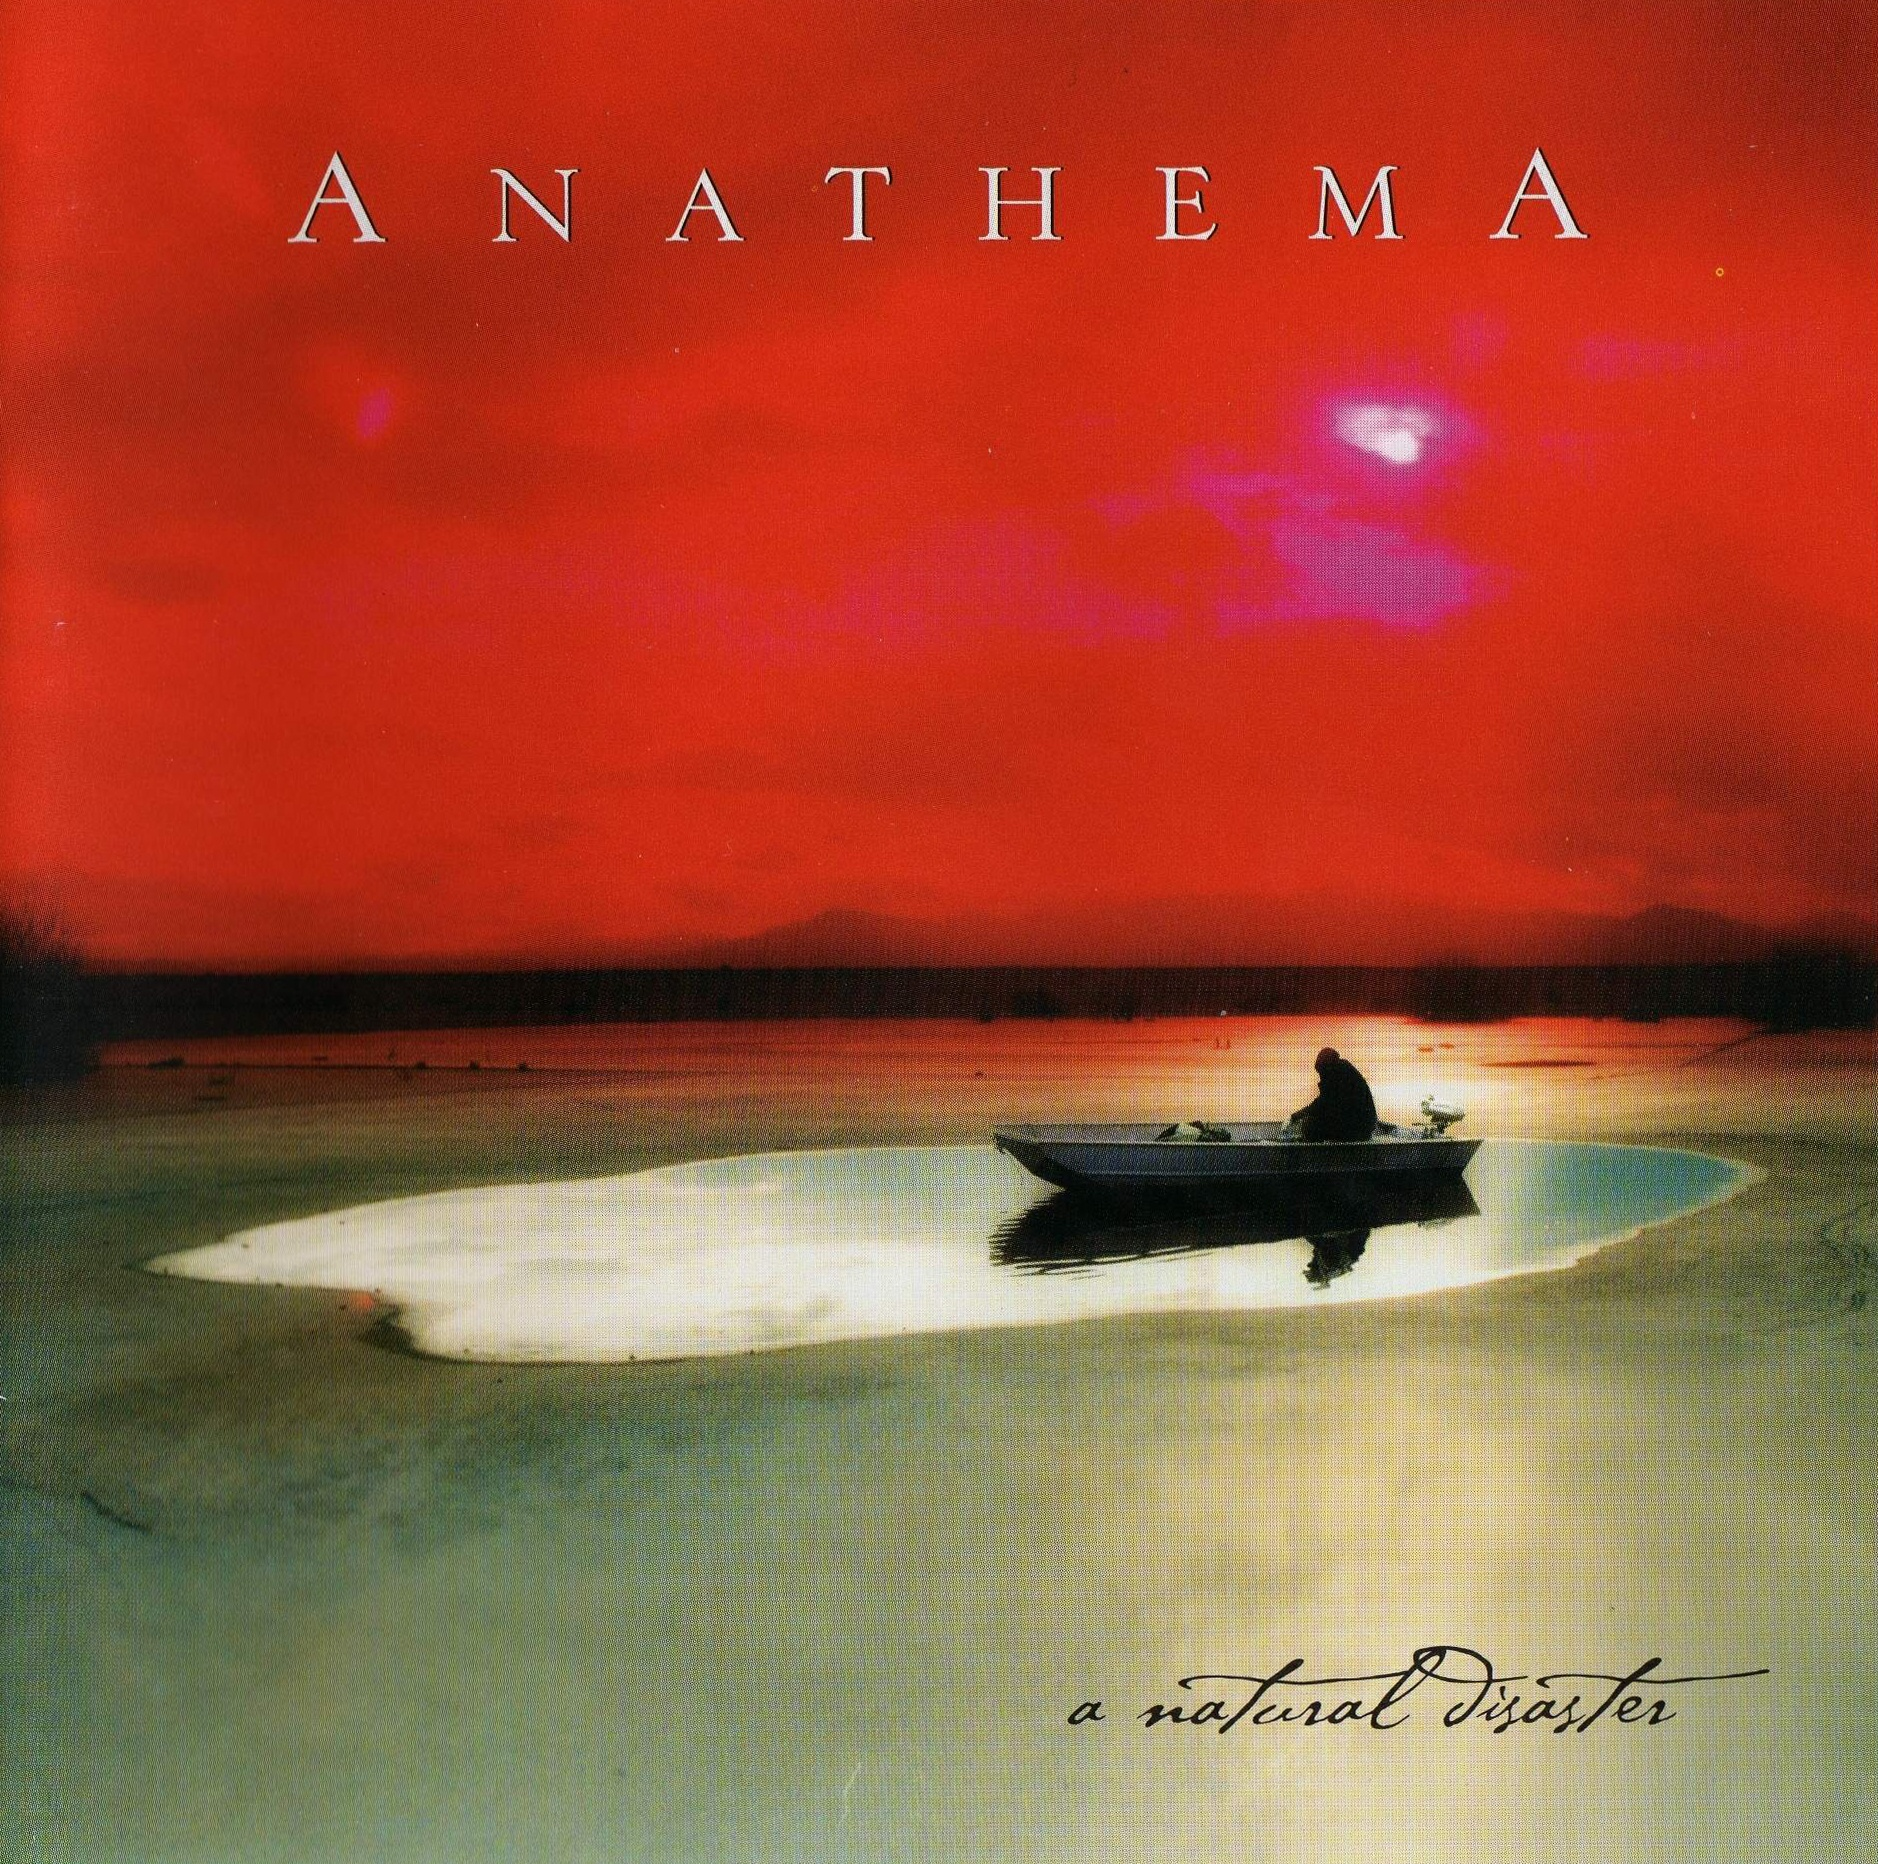 Are you there - Anathema